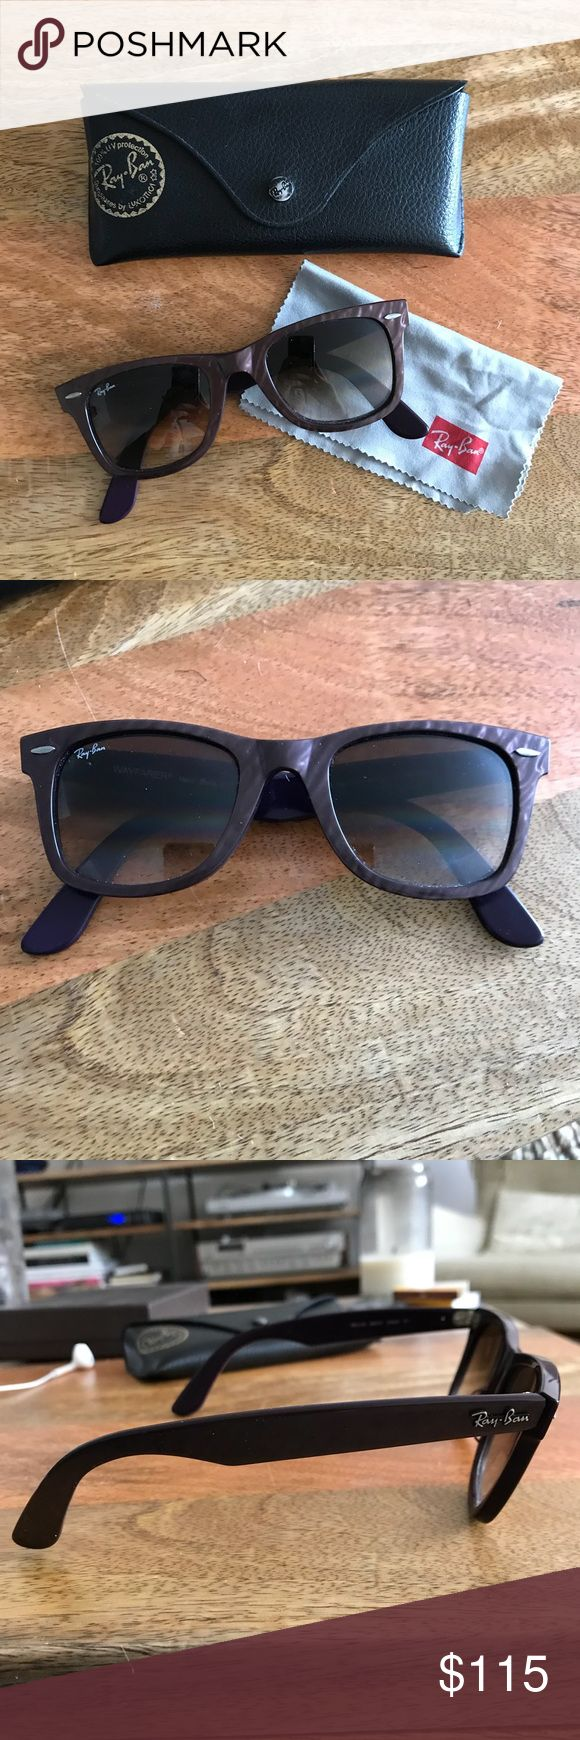 🕶Ray-Ban Original Wayfarer Sunglasses Purple Special edition purple metallic with gradient lens available for purchase! Comes with dust cloth. Glasses are in excellent condition and case has a little wear. Ray-Ban Accessories Sunglasses